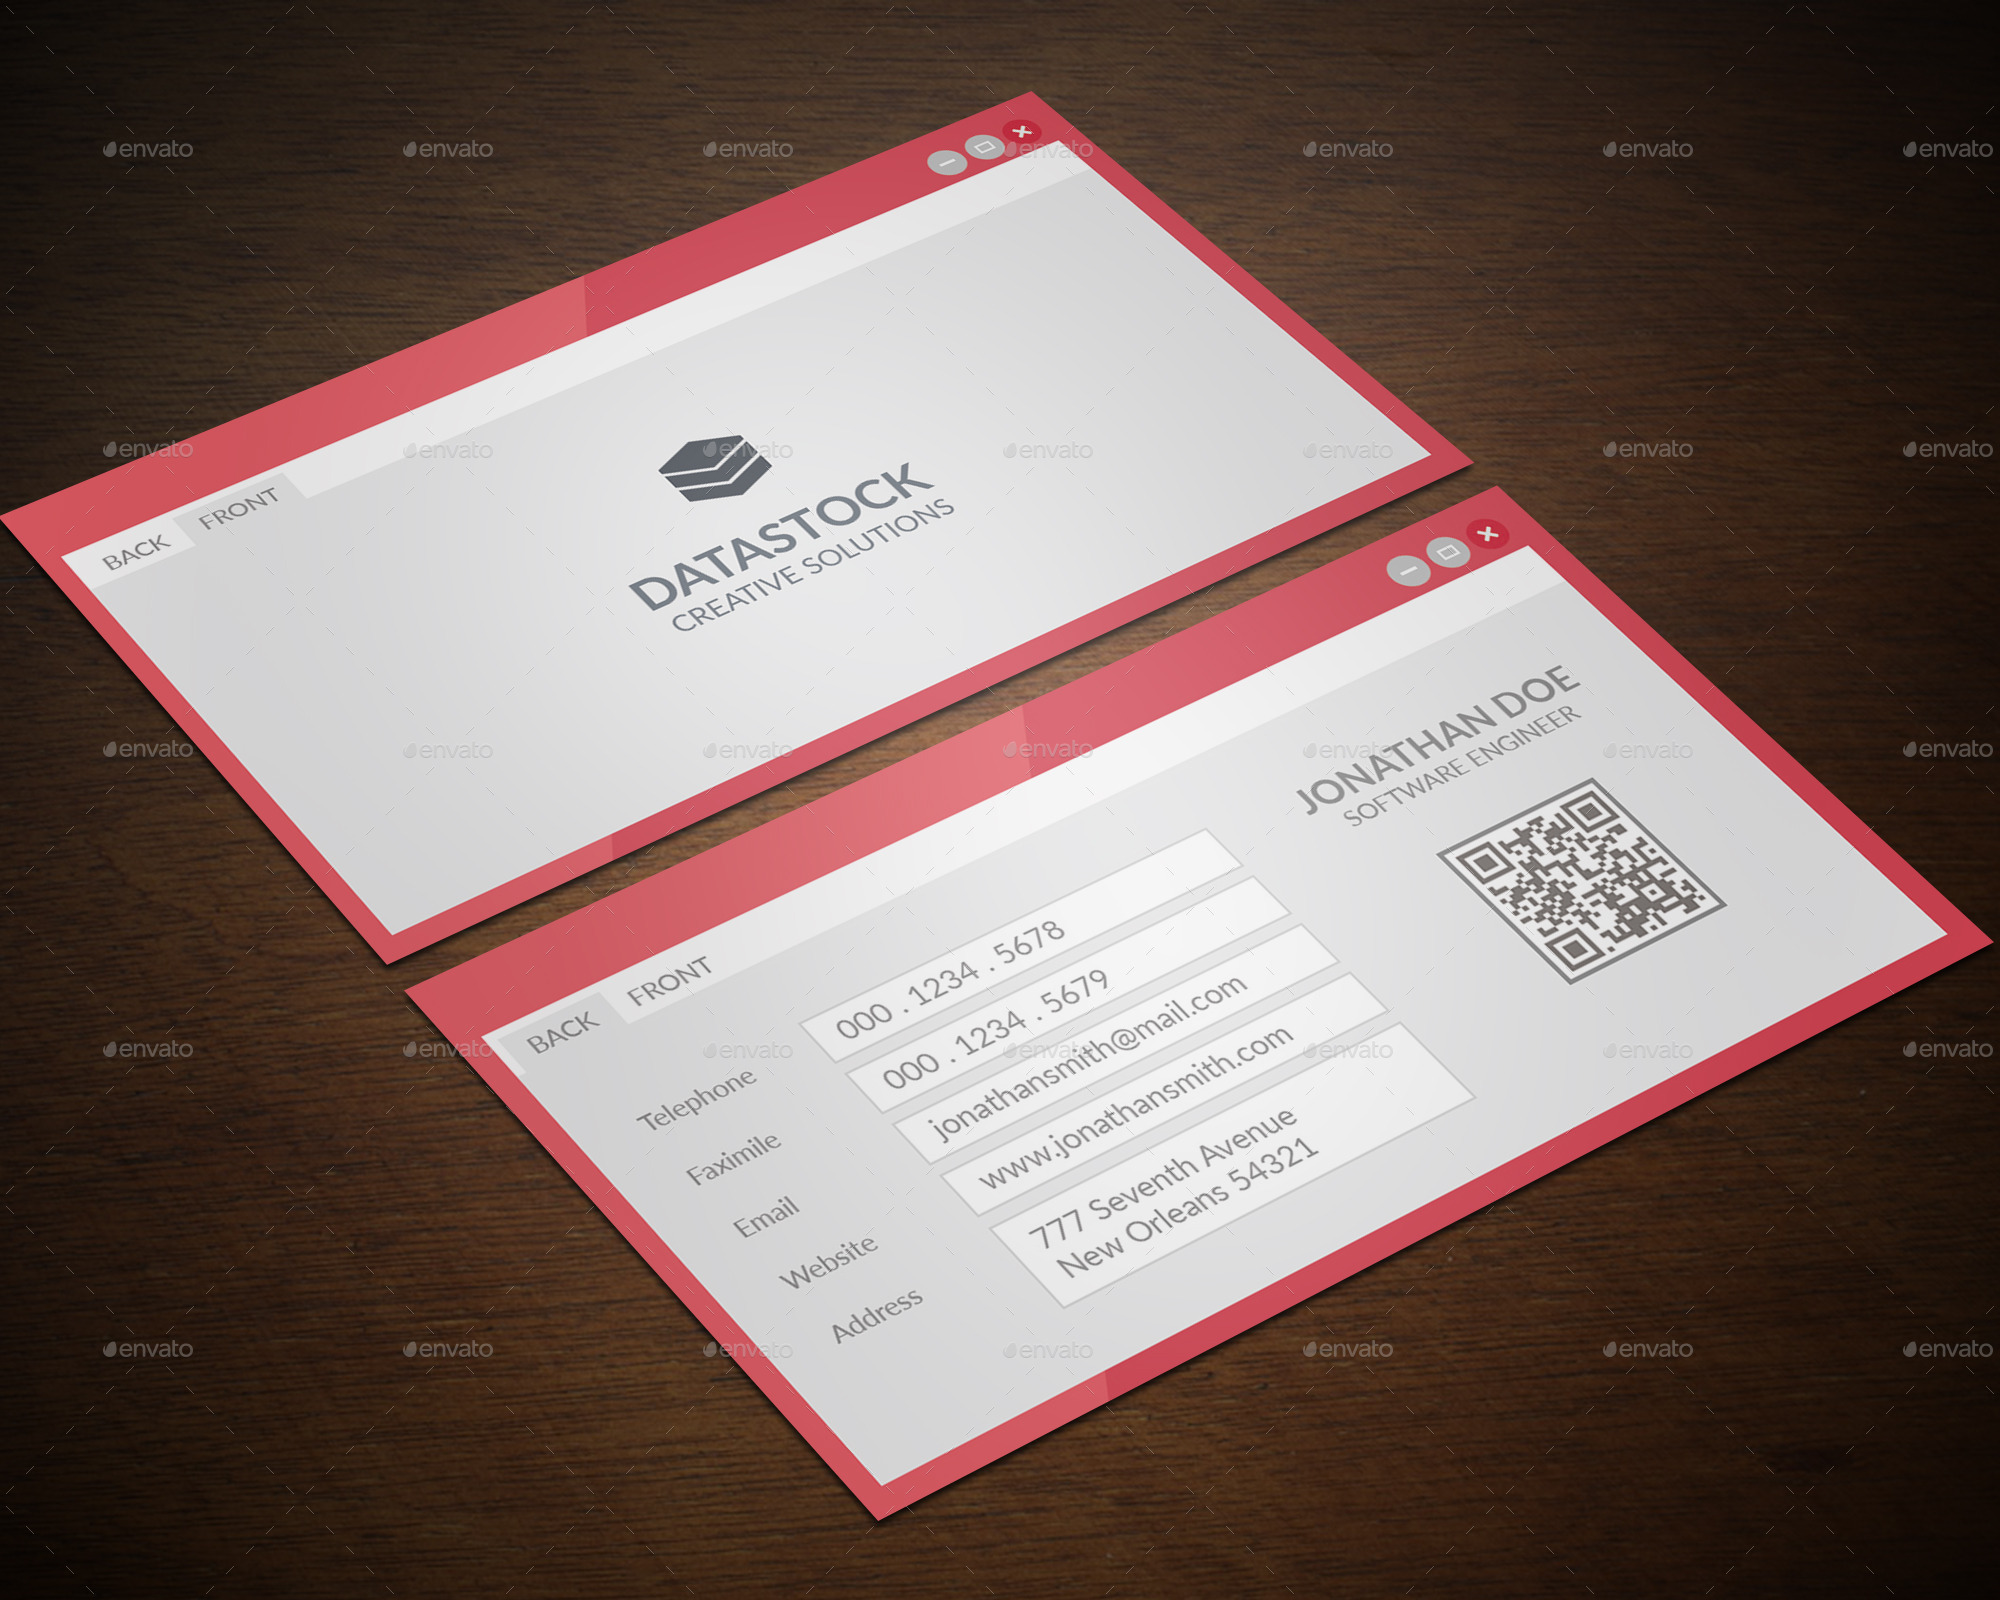 software engineer business card by gowes